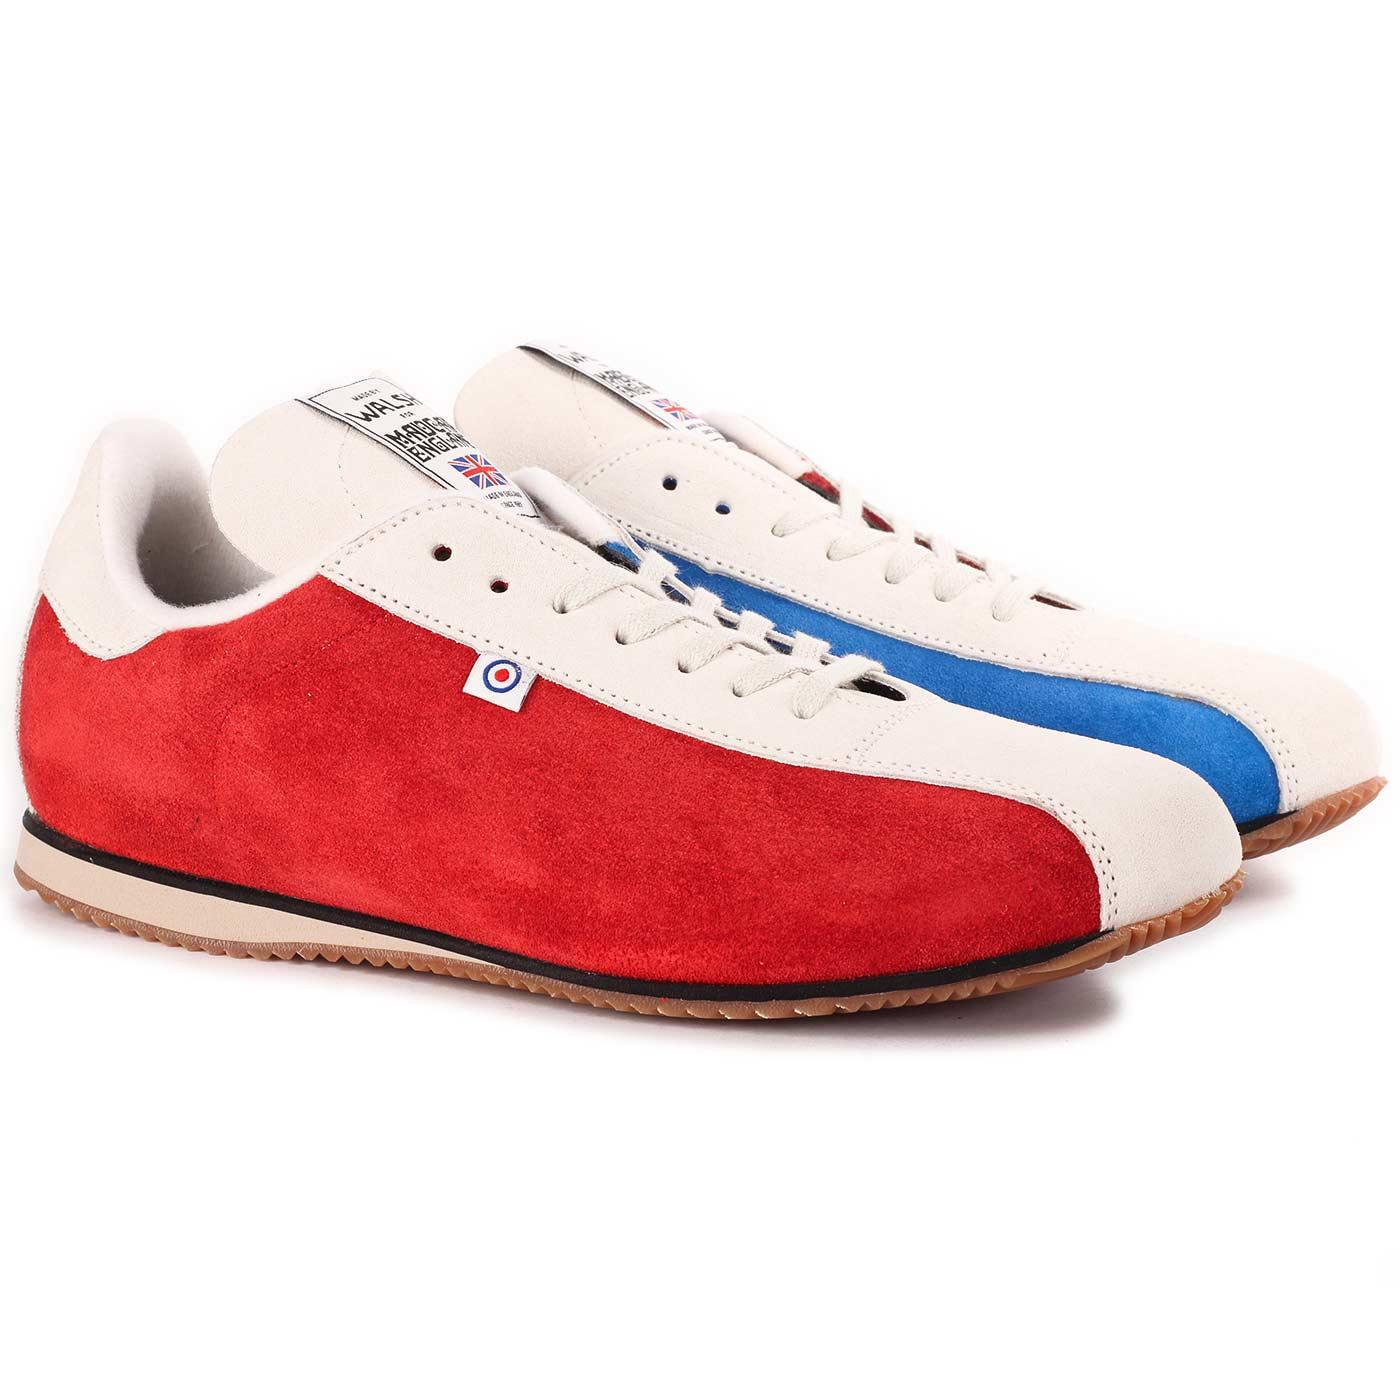 Northern Soul WALSH x MADCAP ENGLAND Mod Trainers